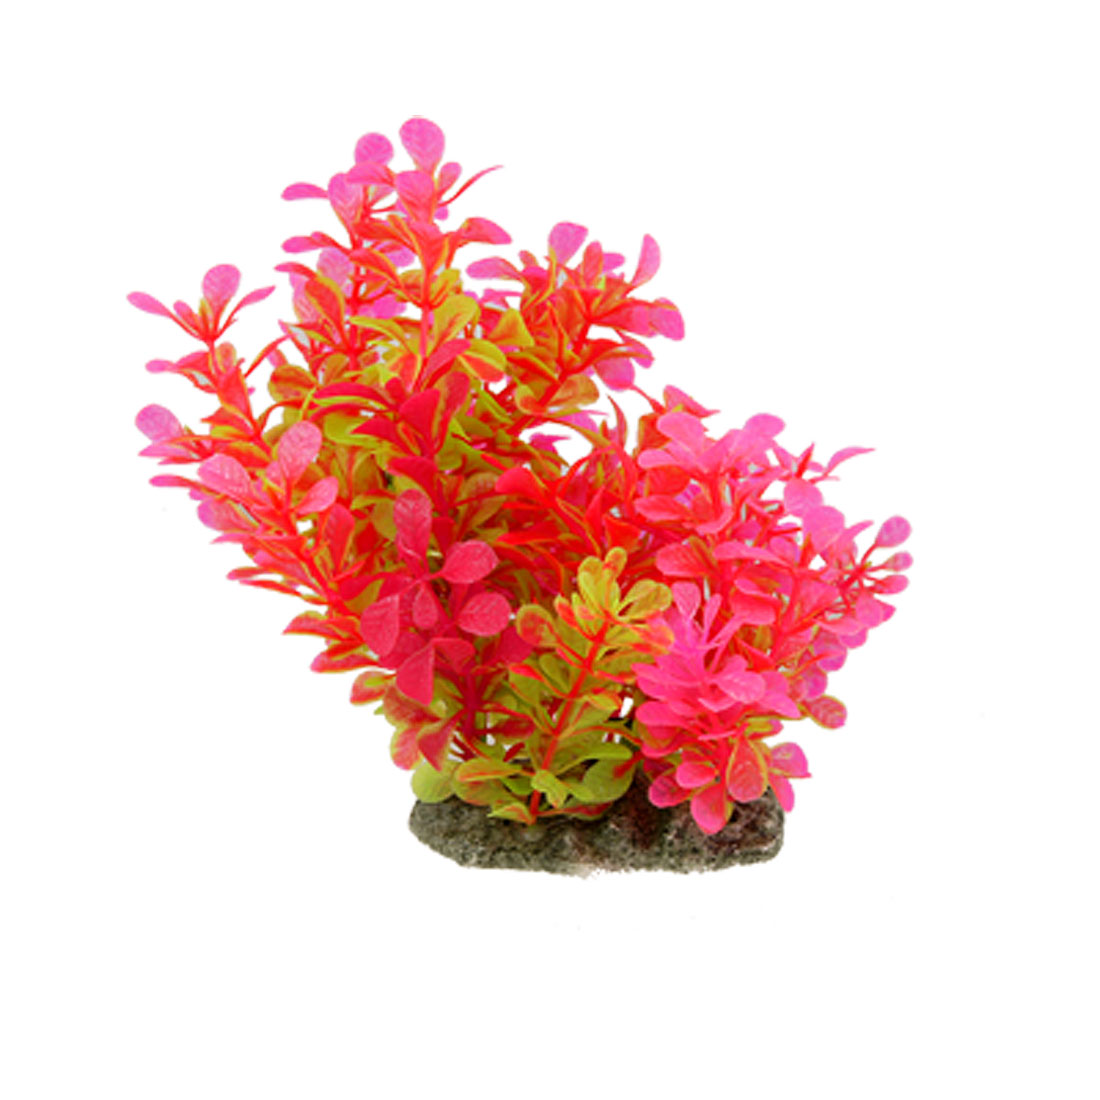 Hot Magenta Green Underwater Plastic Grass Ornament for Aquarium